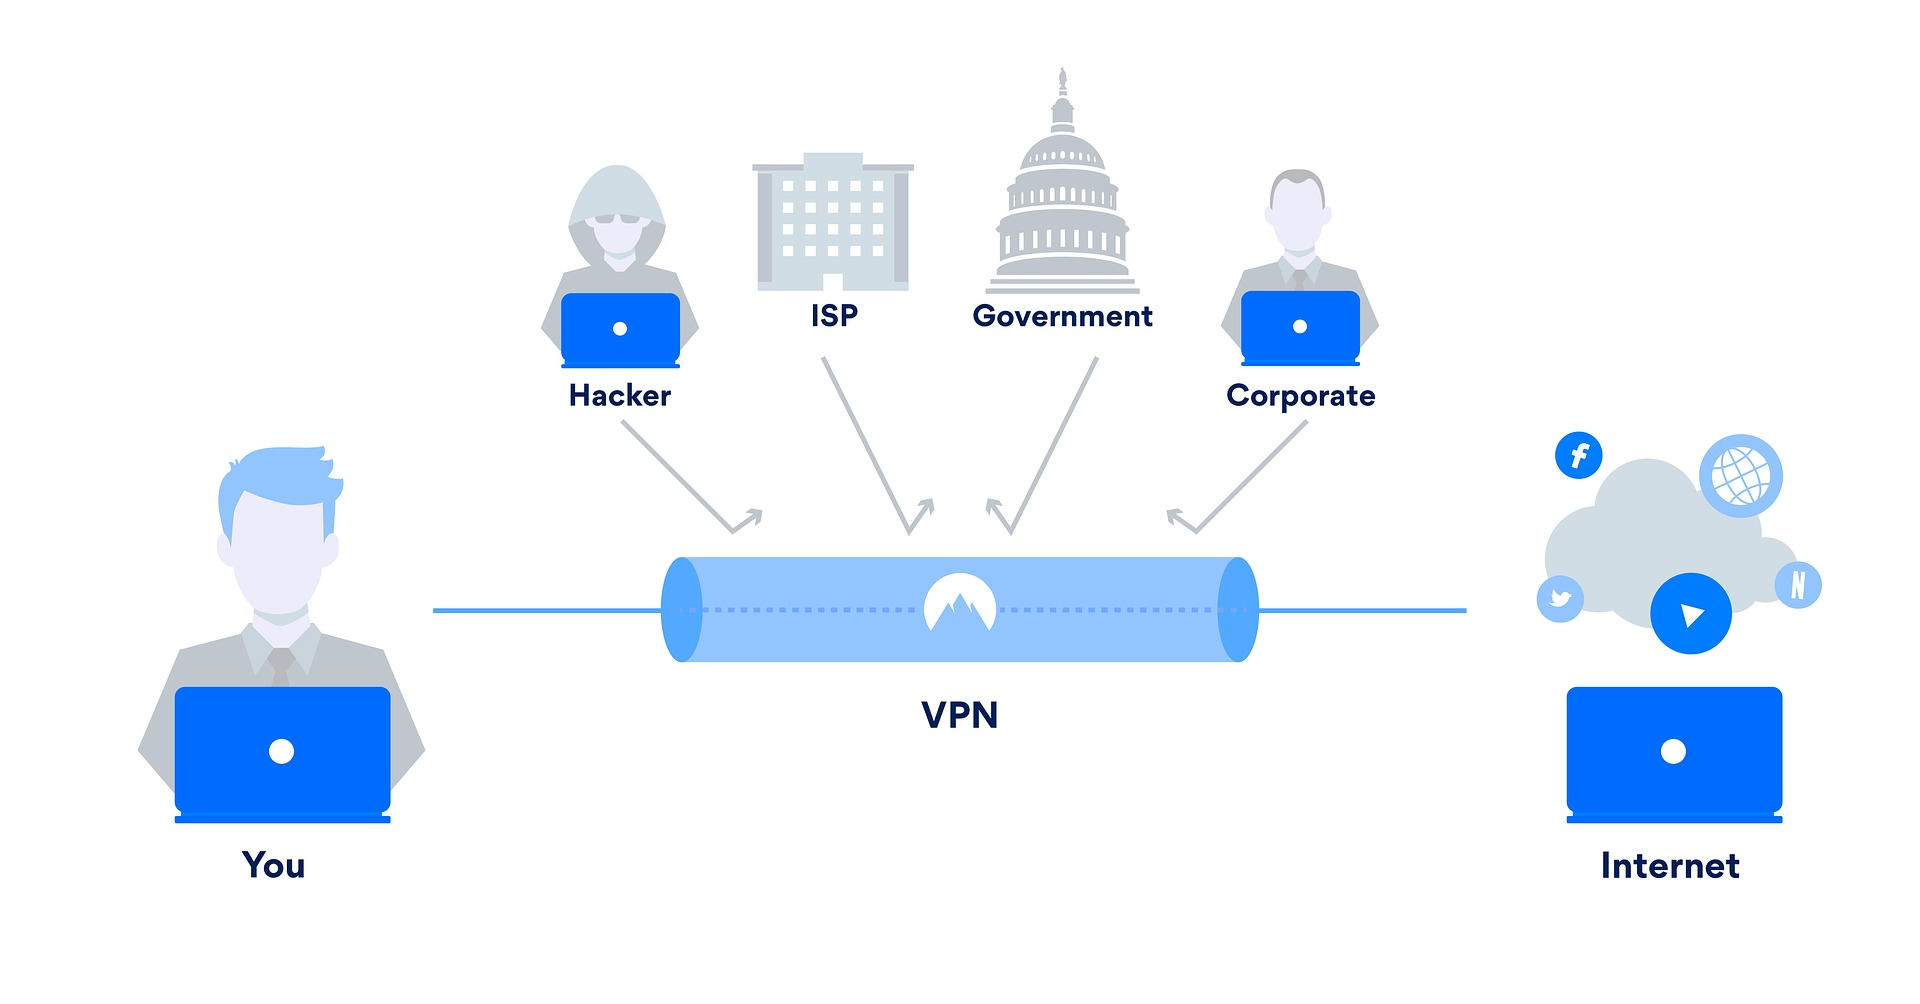 vpn-for-home-security-4079772_1920